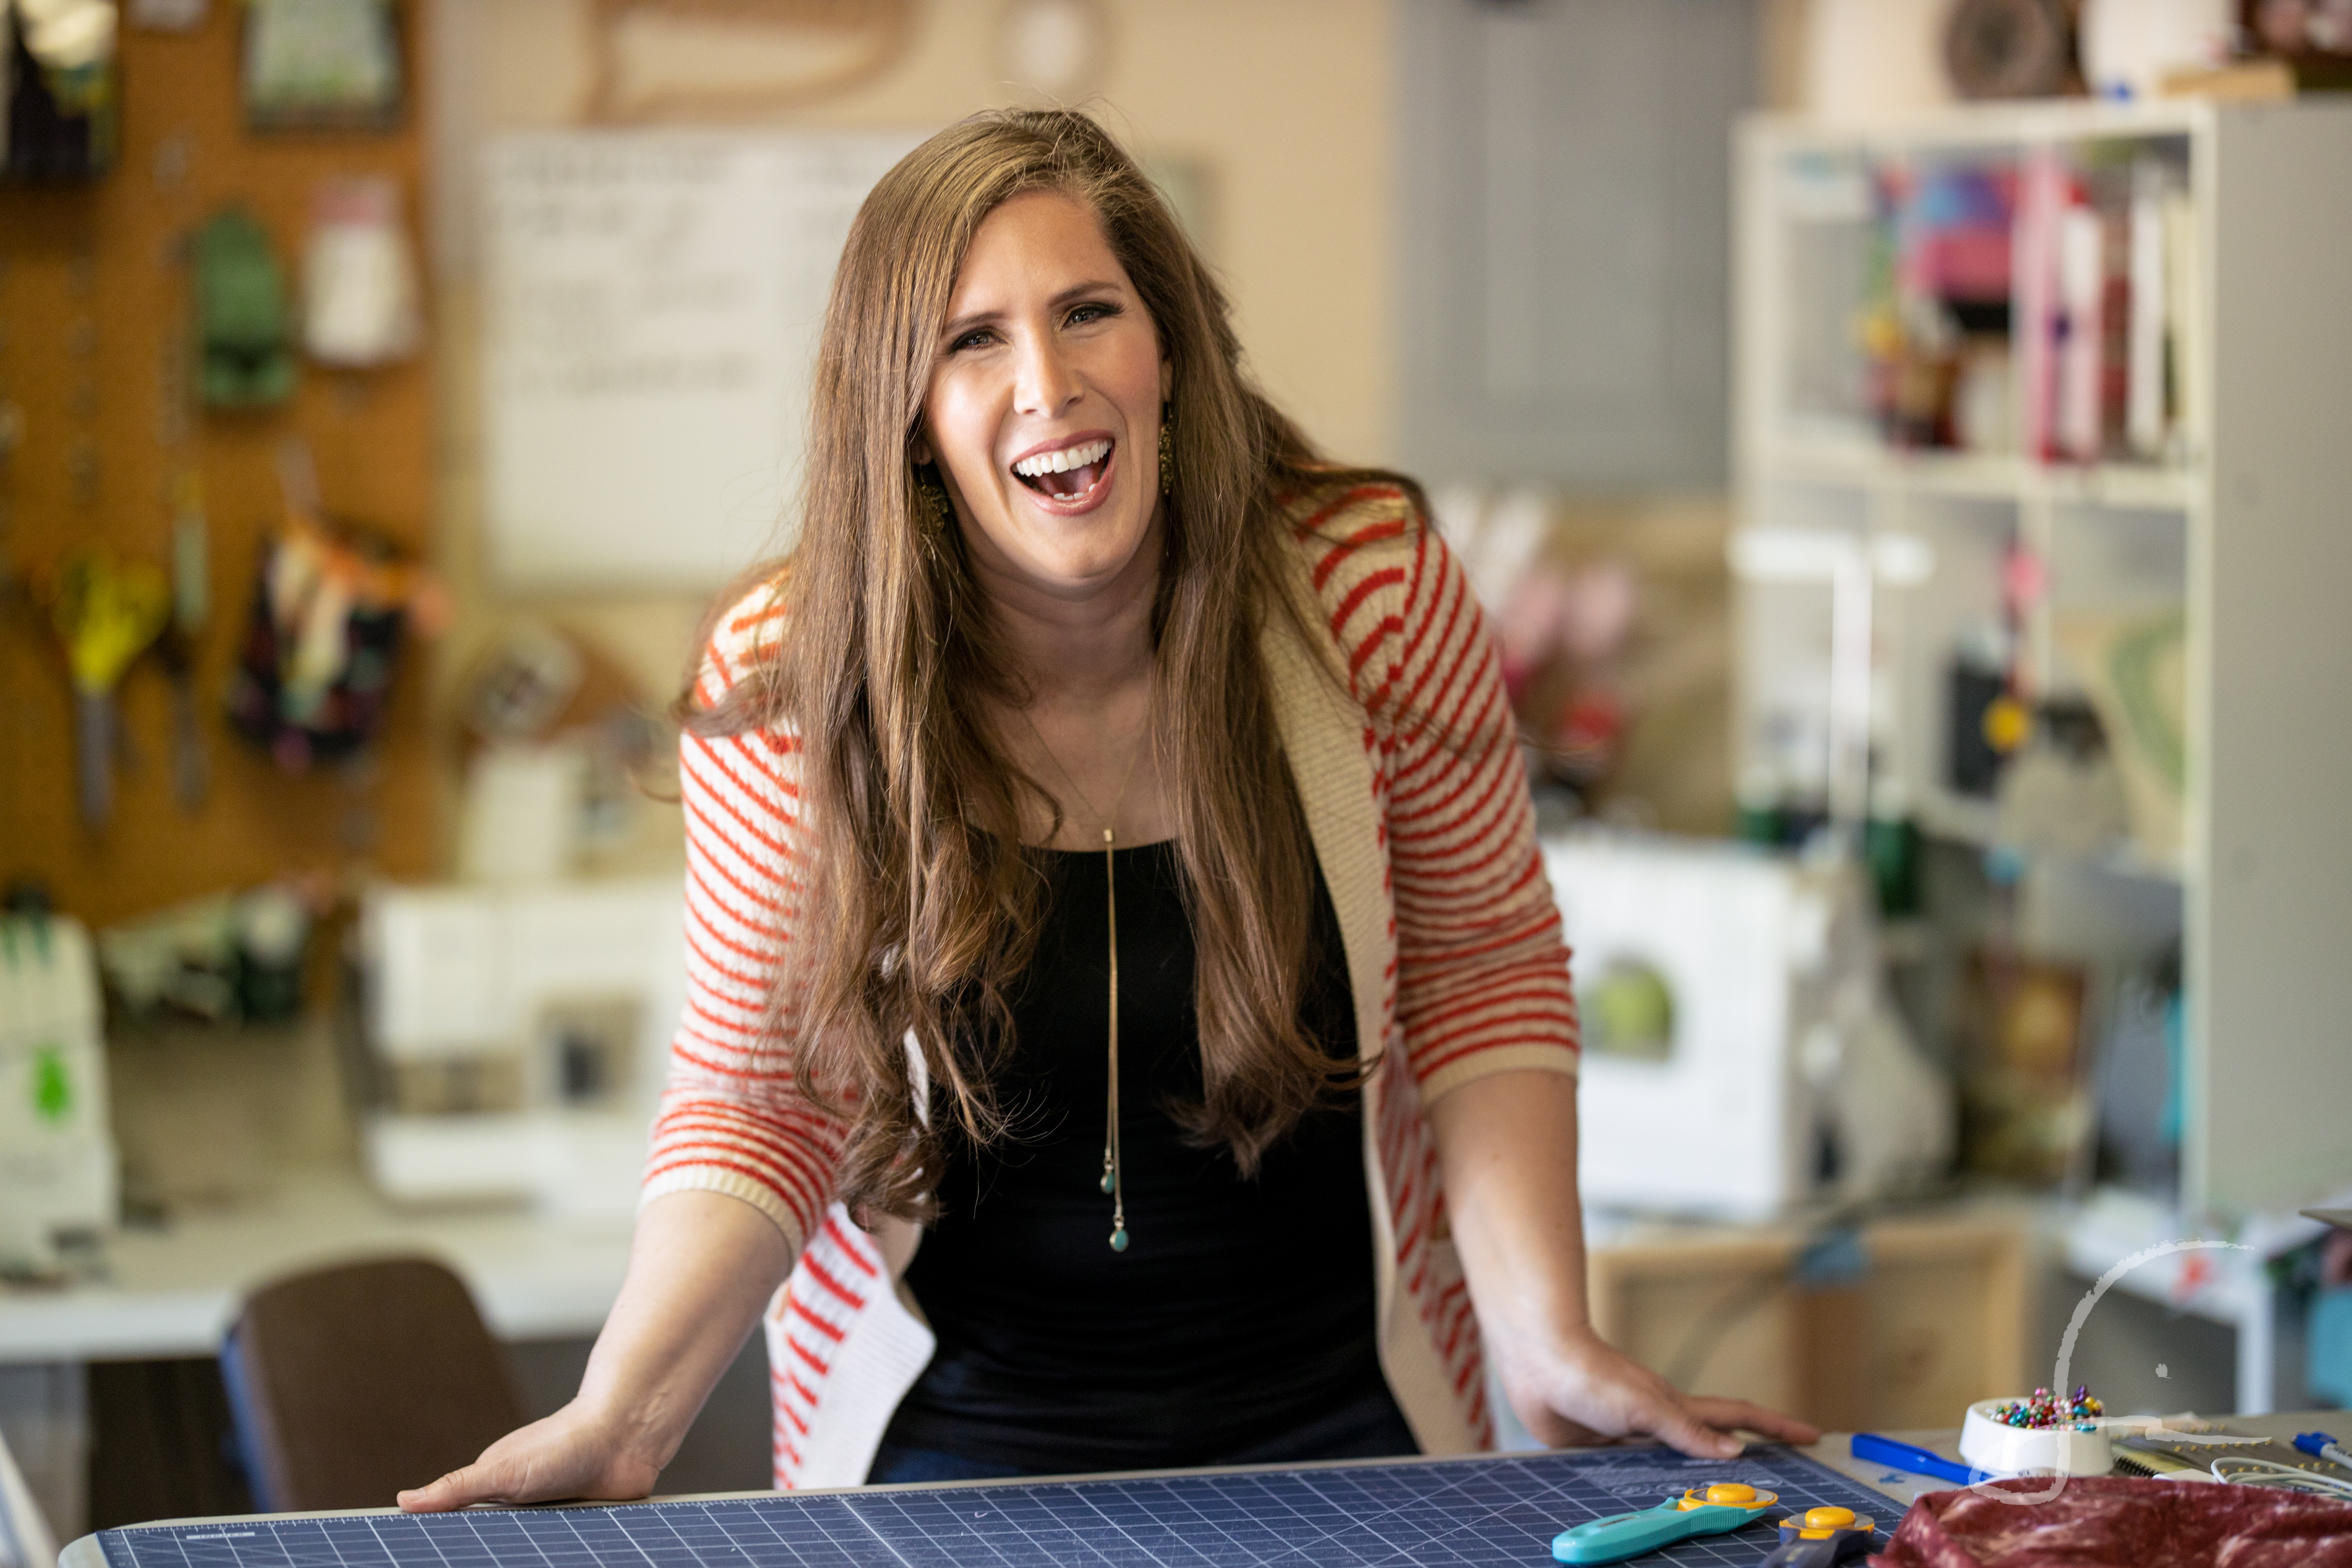 Woman in sewing studio laughing